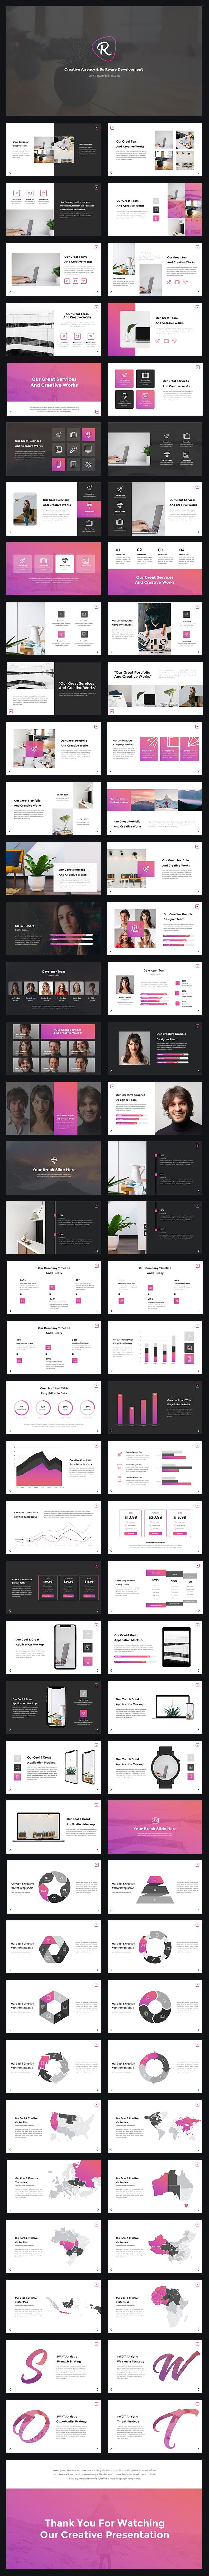 Rapido - Creative PowerPoint Template | Template, Ppt design and ...